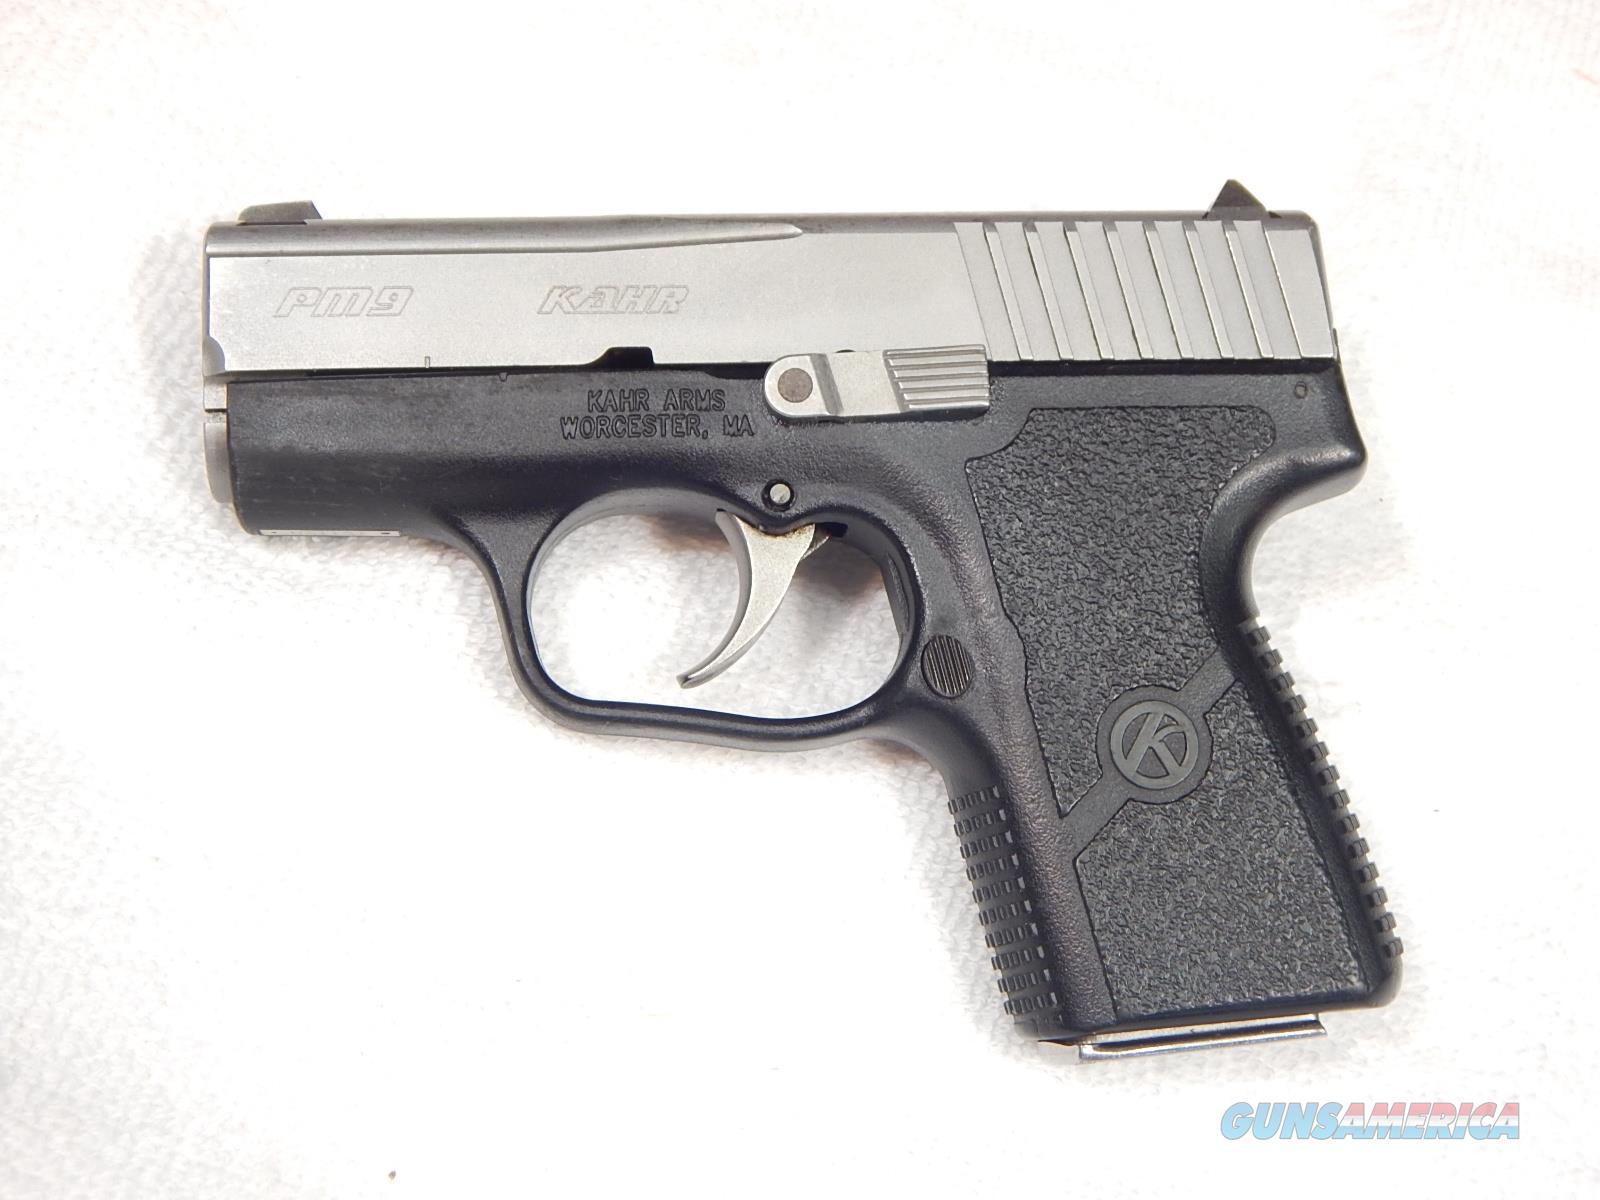 Kahr PM 9 9mm two mags  Guns > Pistols > Kahr Pistols